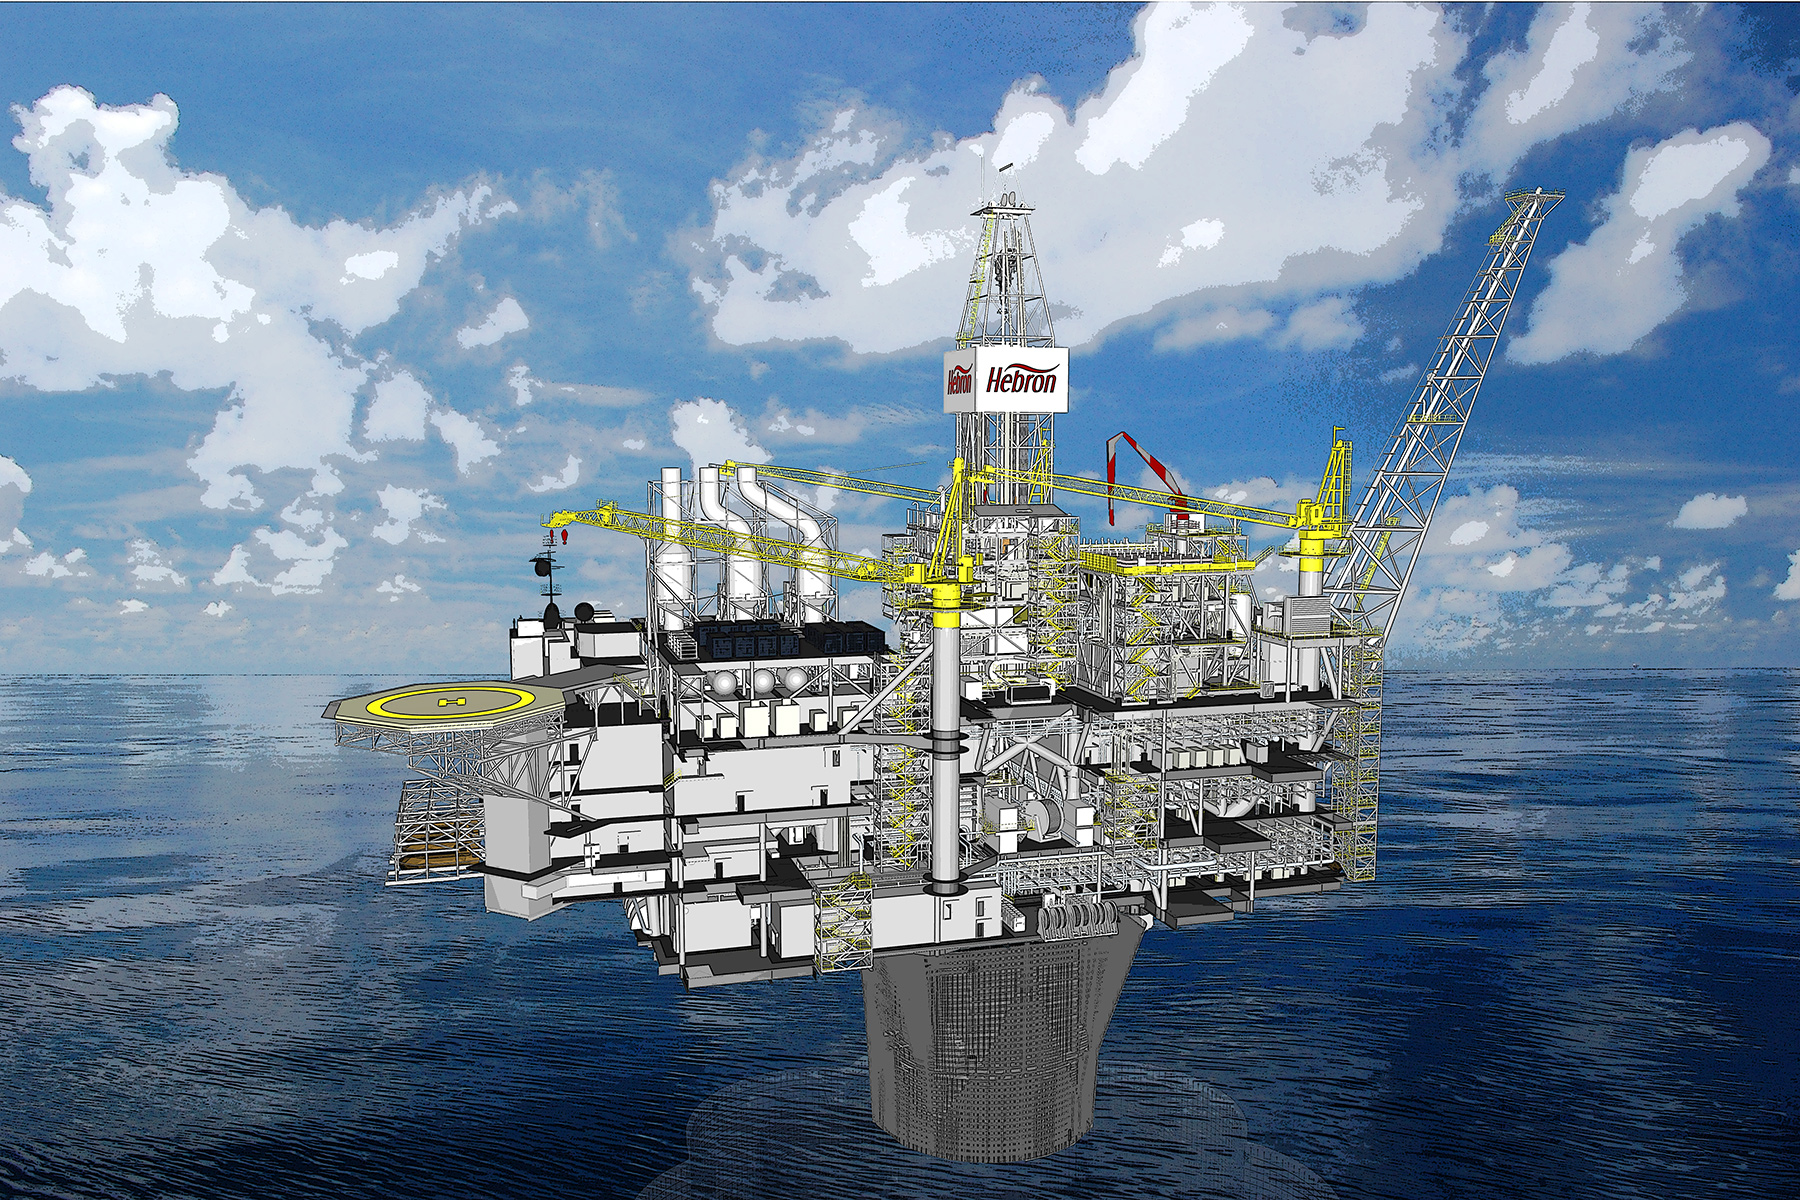 hebron project Exxonmobil has started production from the hebron project offshore canada at its peak, the project will produce up to 150,000 barrels of oil per day discovered in 1980, the hebron field is estimated to contain more than 700 million barrels of recoverable resources.